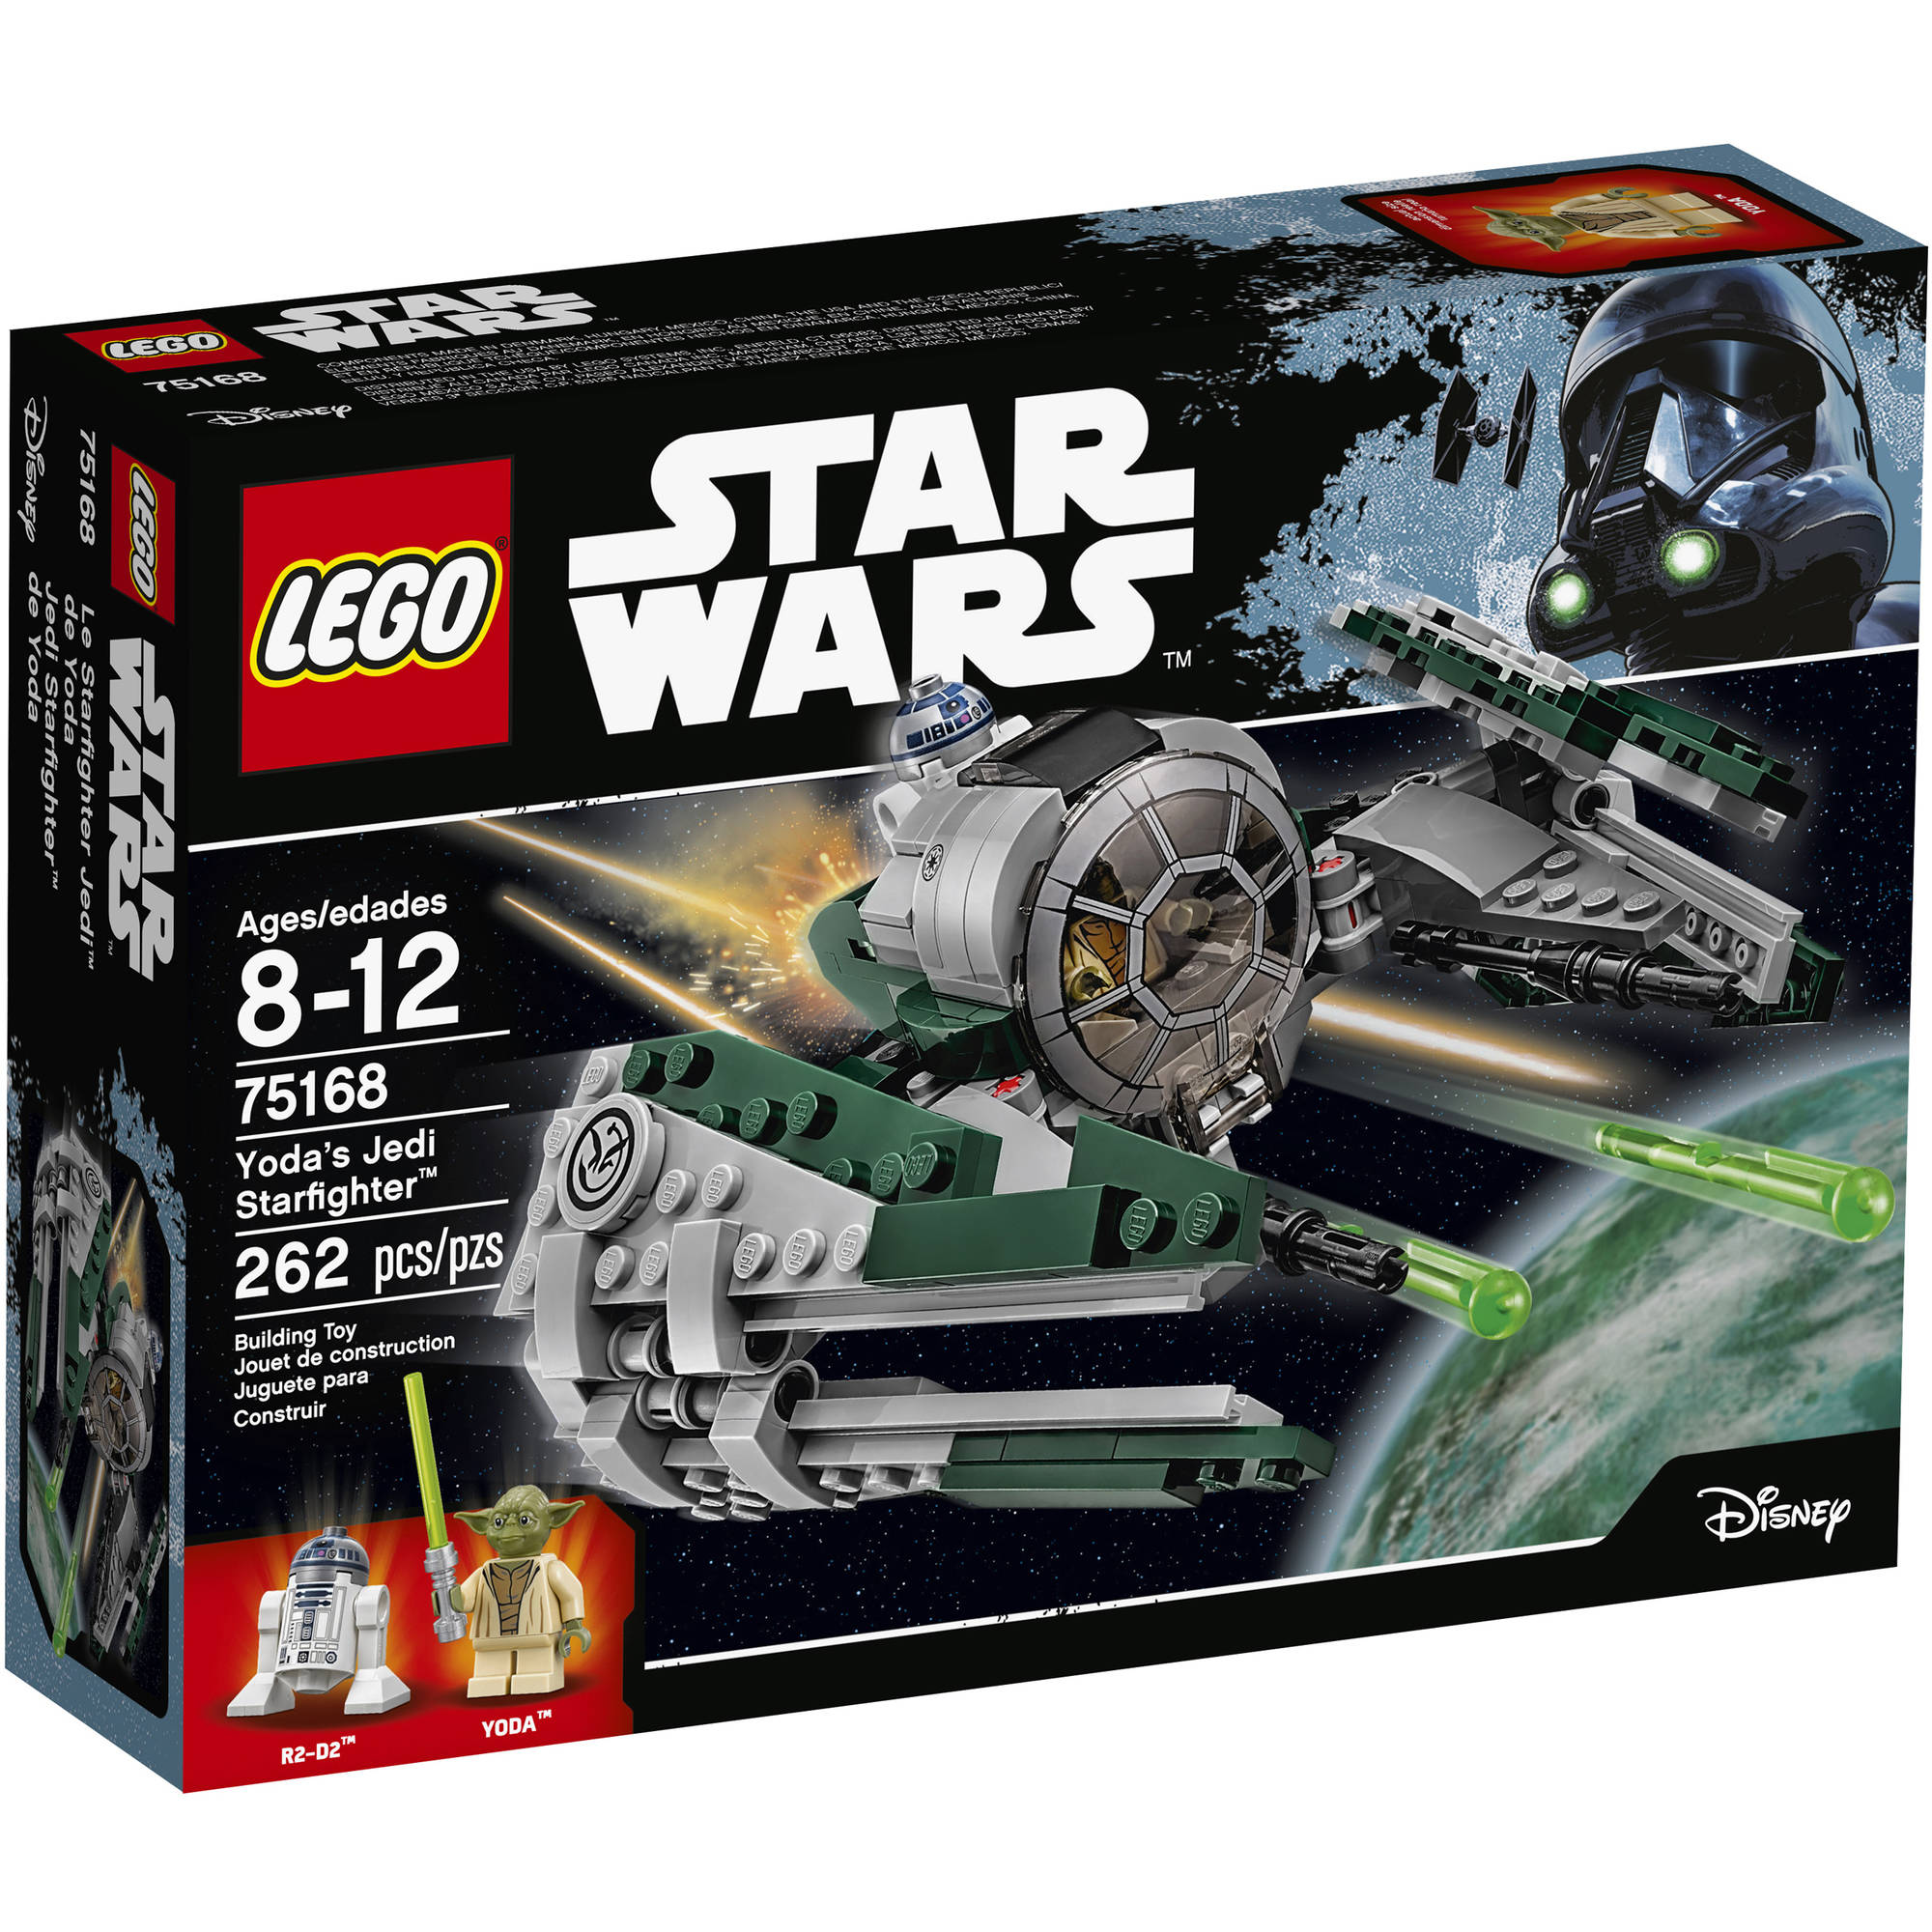 LEGO Star Wars Yoda's Jedi Starfighter (75168)